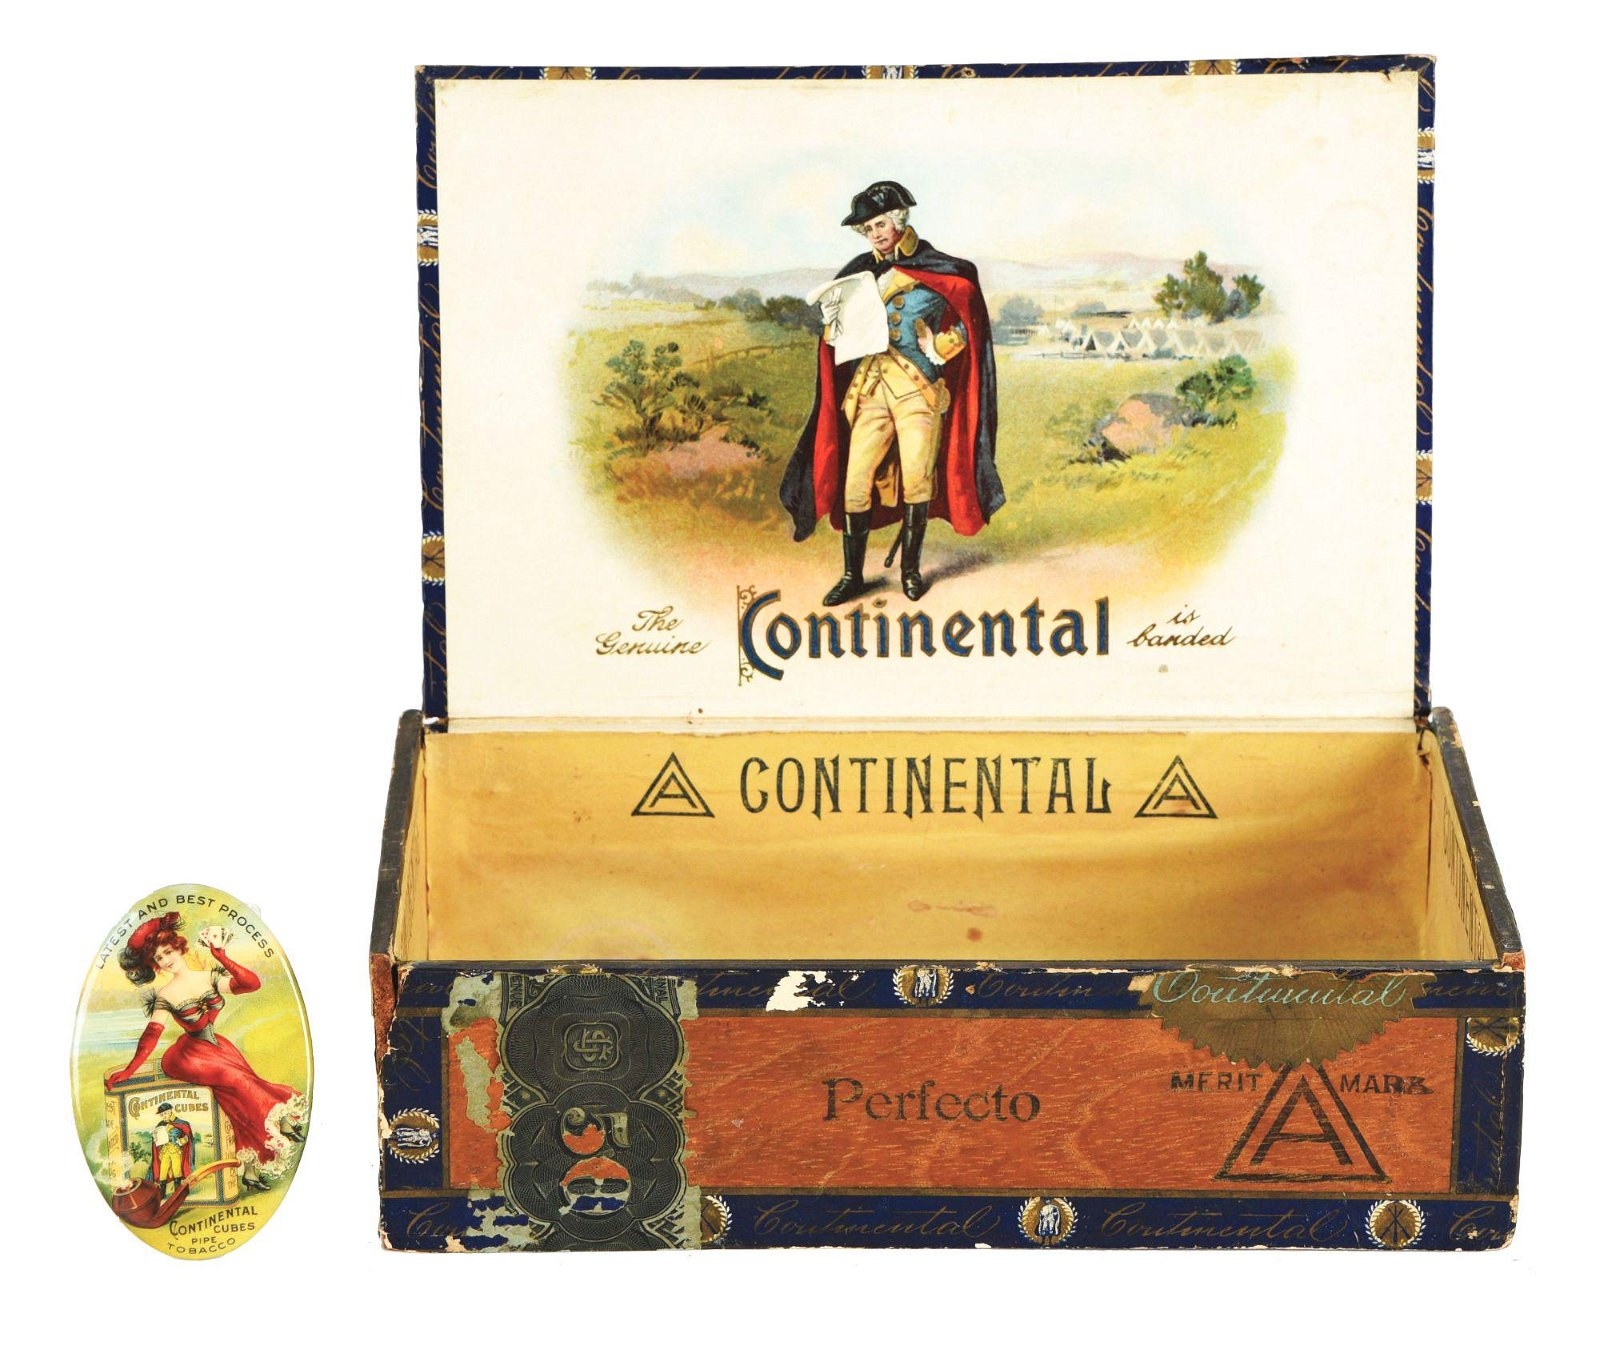 LOT OF 2: CONTINENTAL CUBES TOBACCO ITEMS.